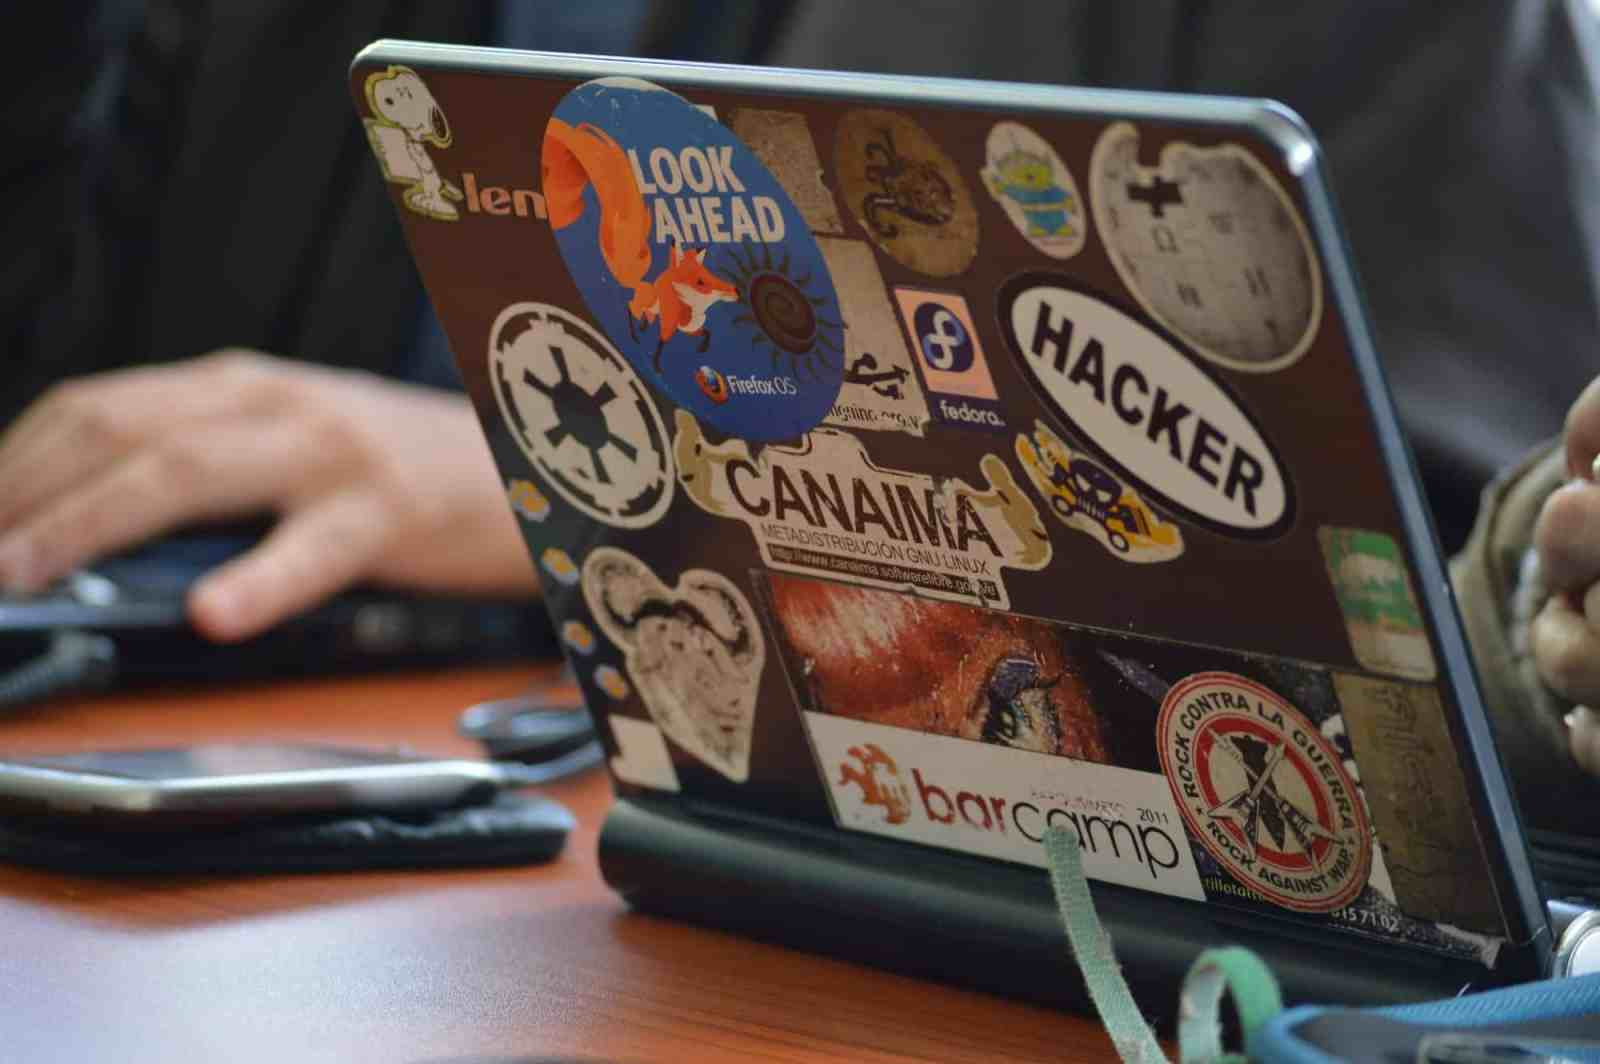 6 Things Your Stickers Say About You